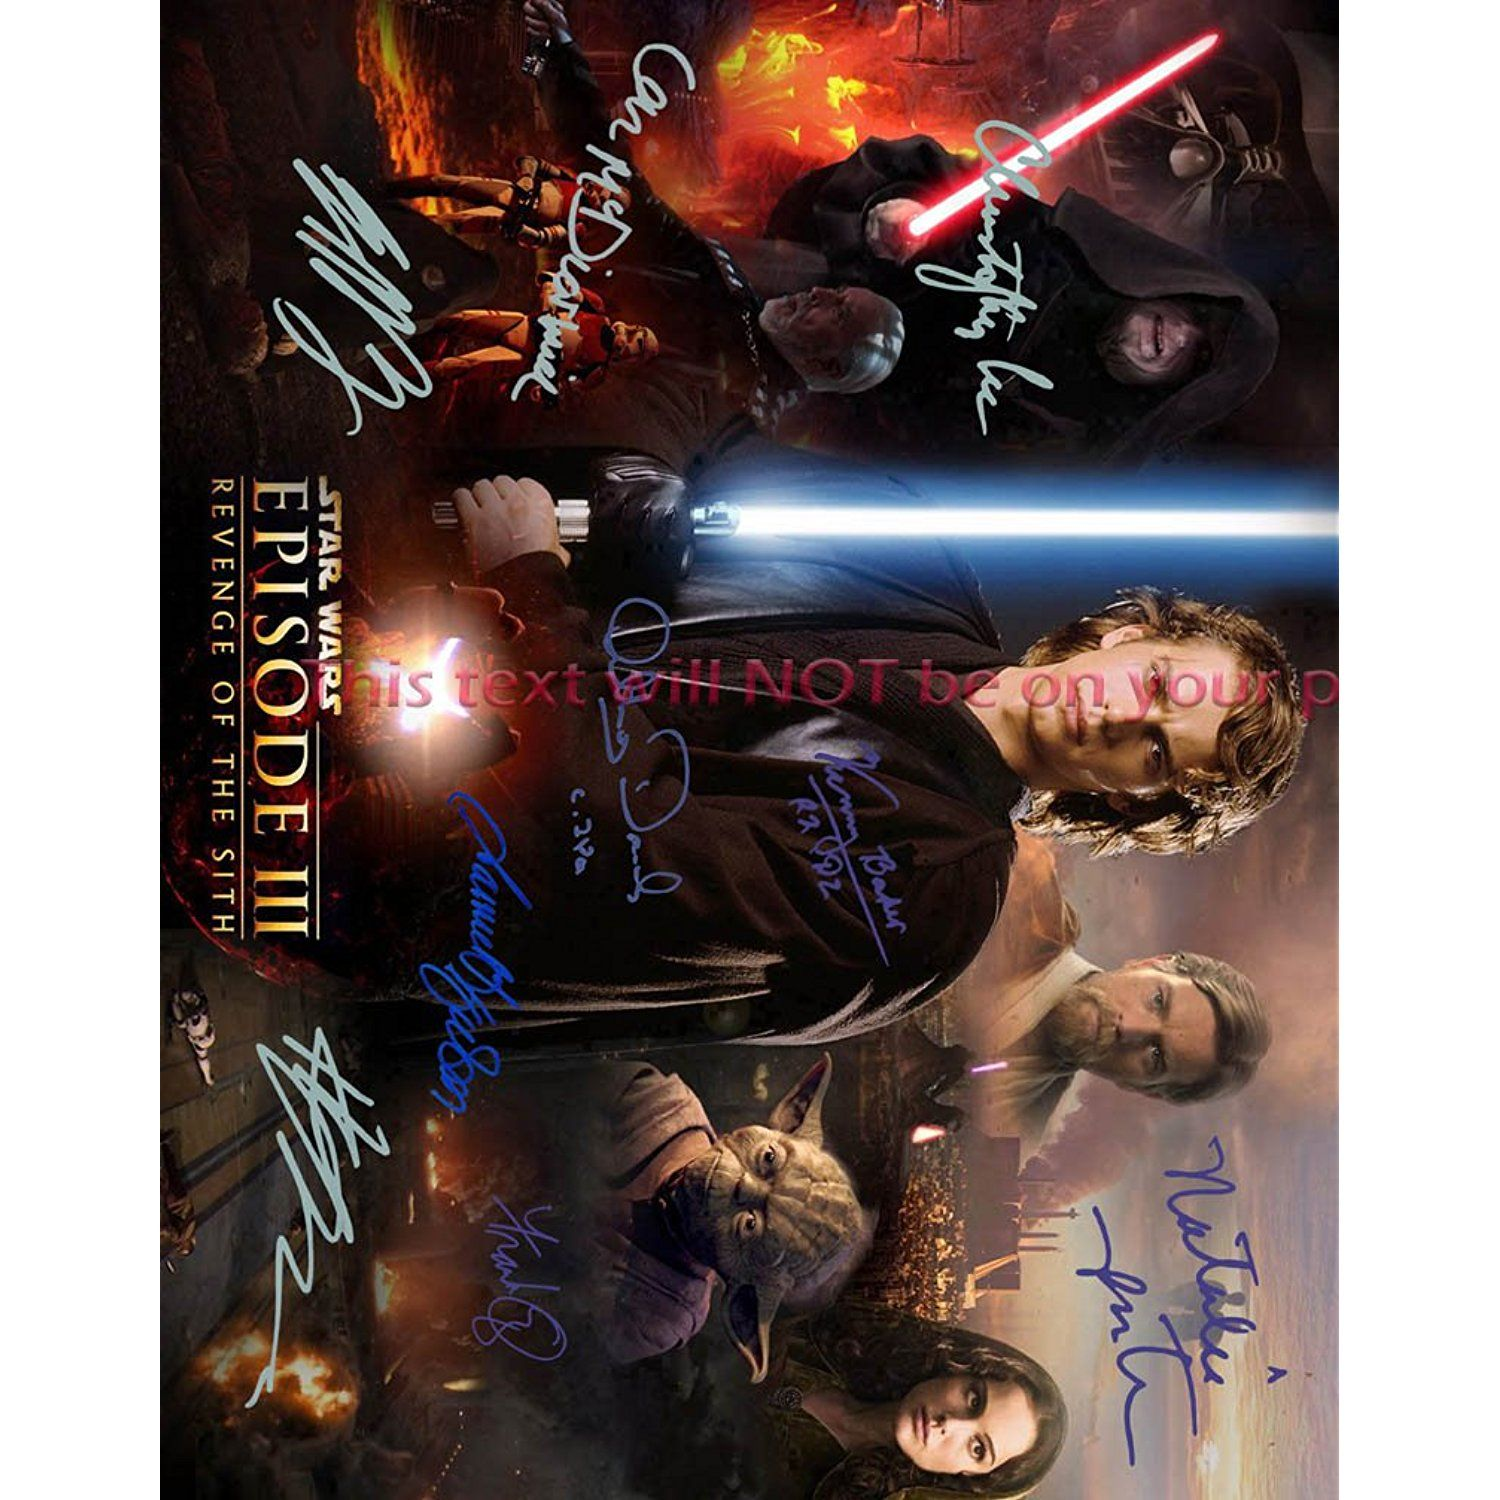 Star Wars Episode Iii Revenge Of The Sith Autographed 11x14 Poster Photo You Can Get Additional Detail Star Wars Episodes Photo Posters Star Wars